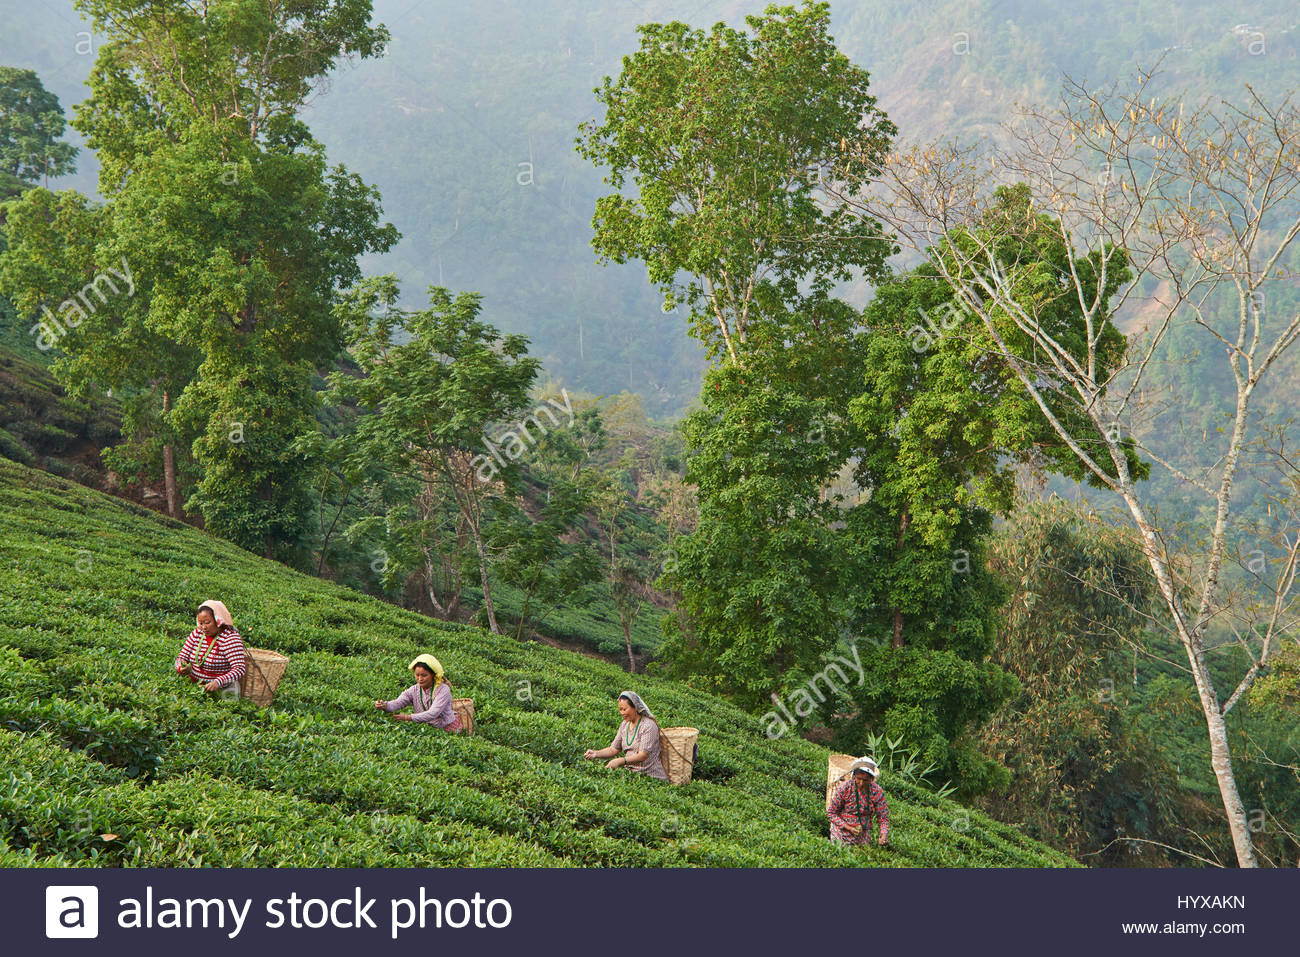 Female labor workers harvesting tea leaves in the tea plantation of the Glenburn Tea Estates in Darjeeling, first - Stock Image